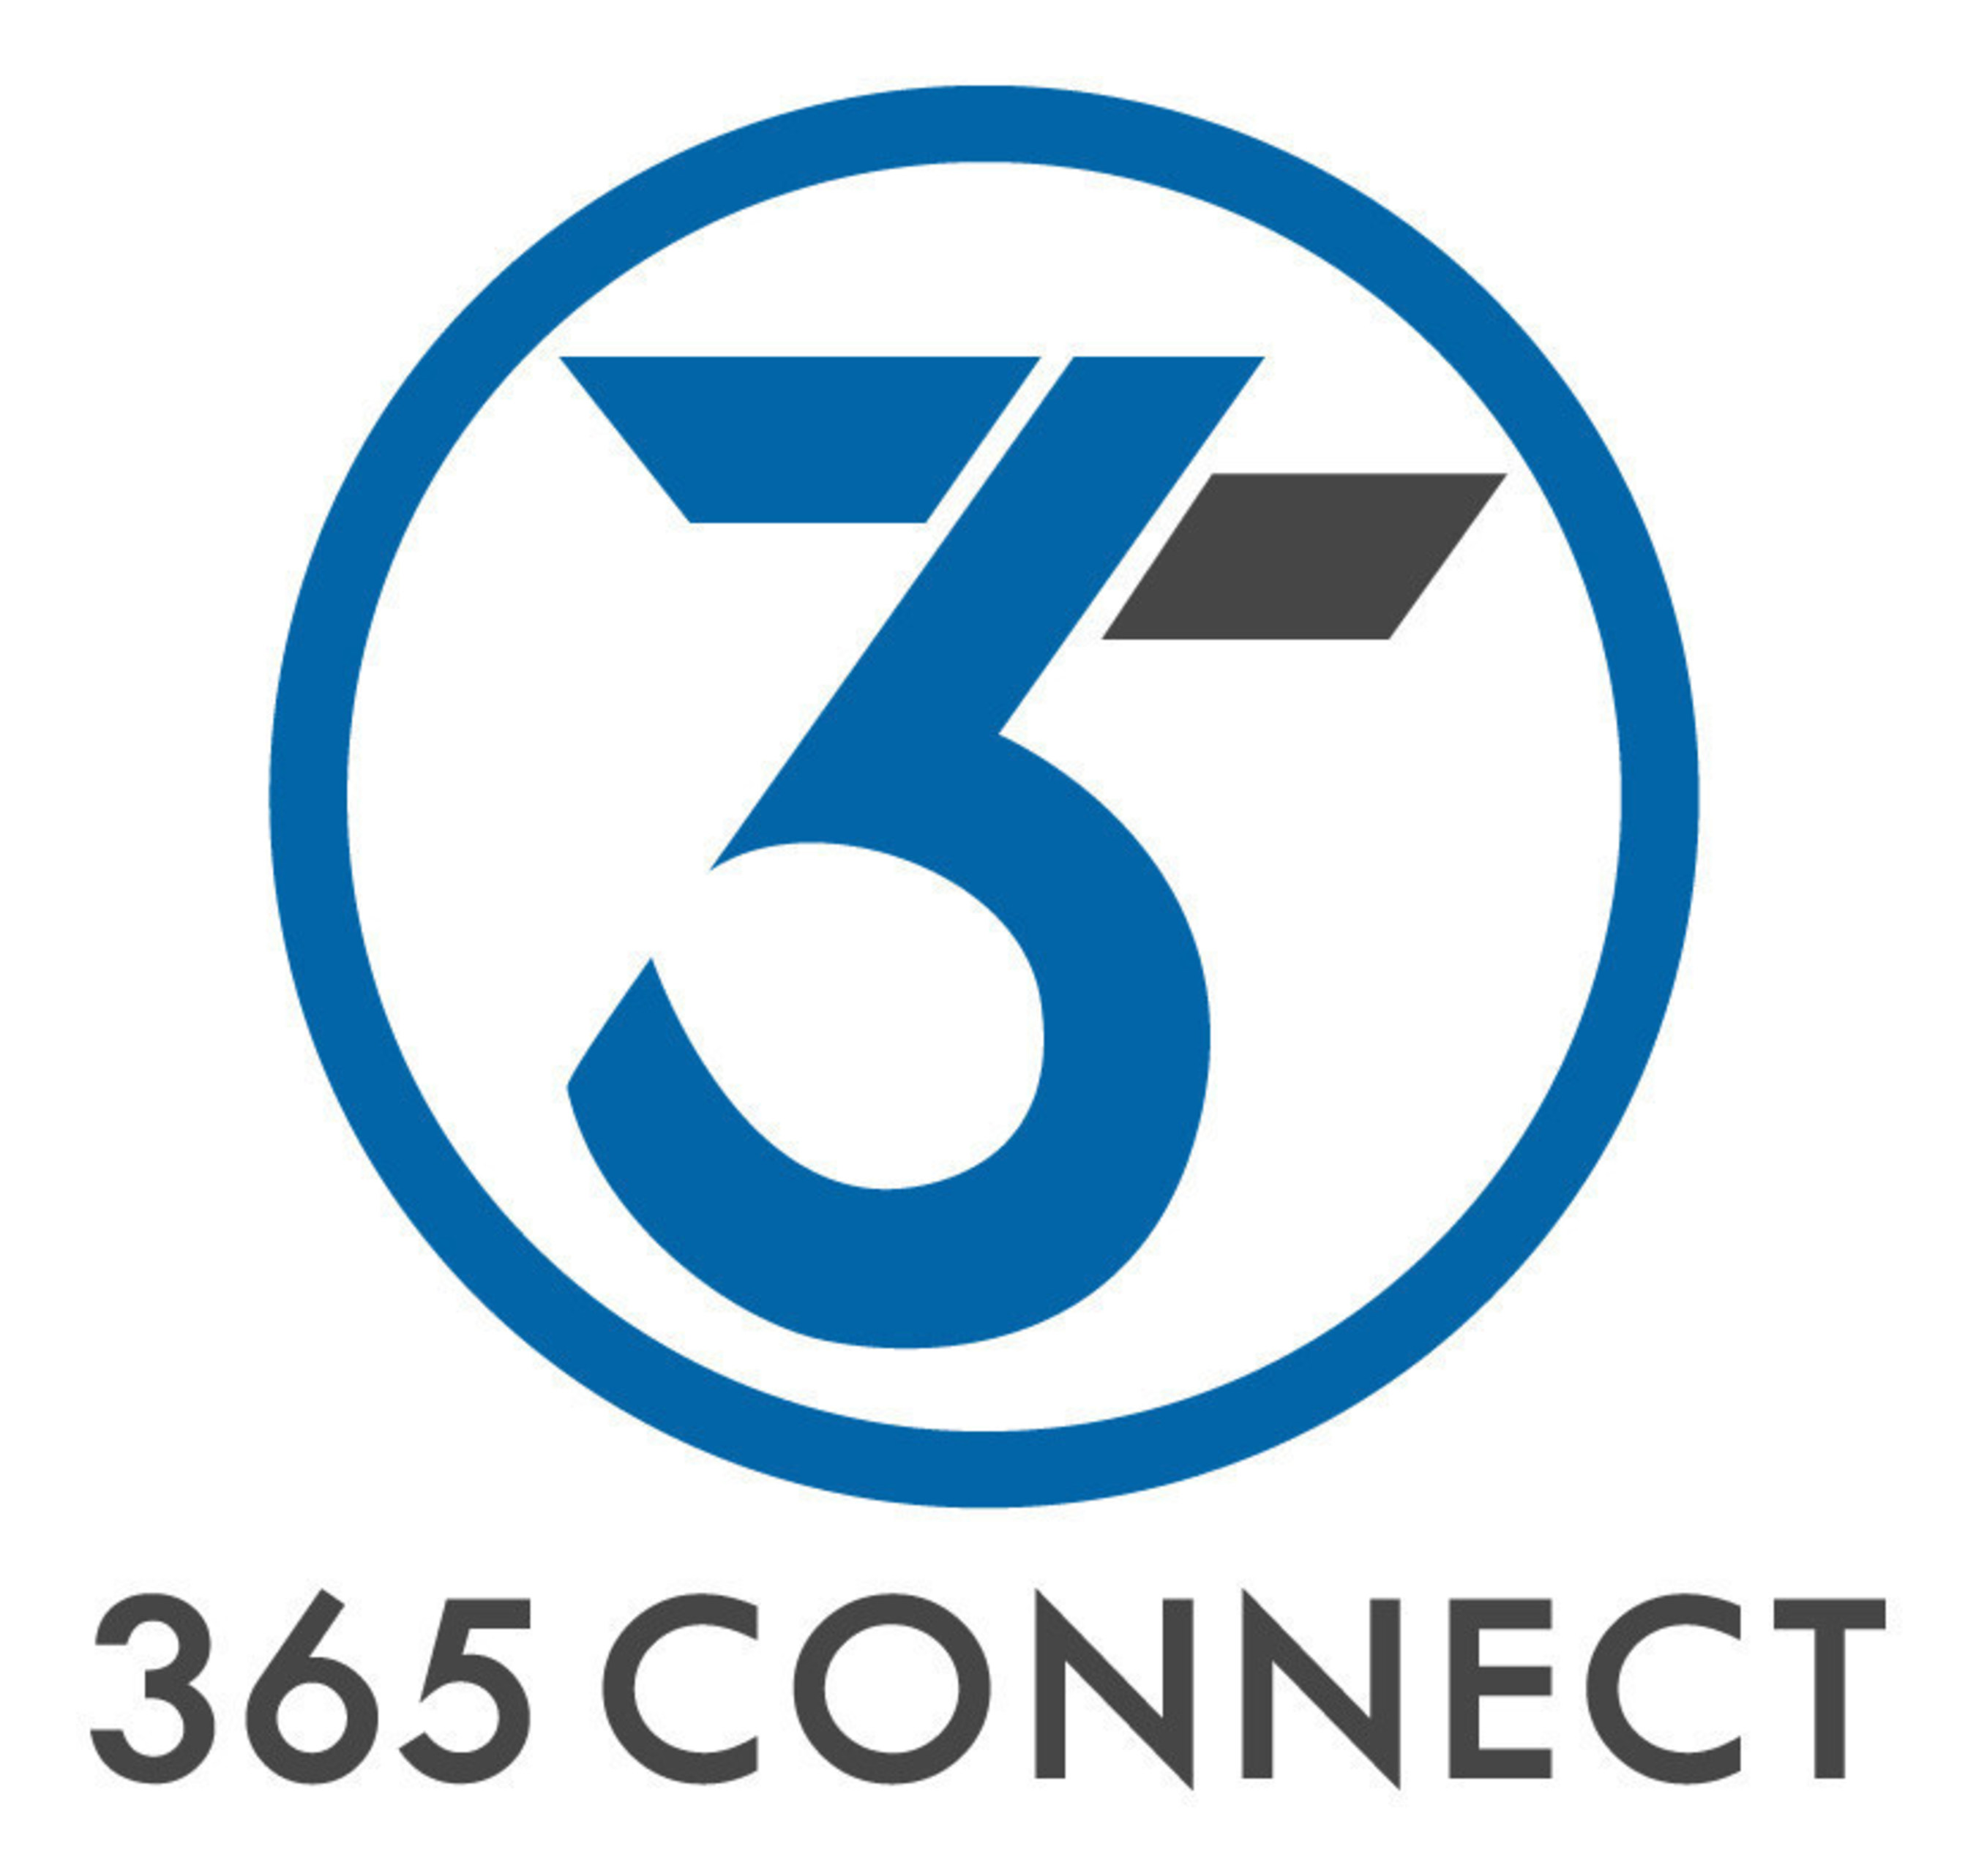 Multifamily Innovator 365 Connect Receives Summit Creative Awards for Its Marketing and Resident Lifecycle Platforms